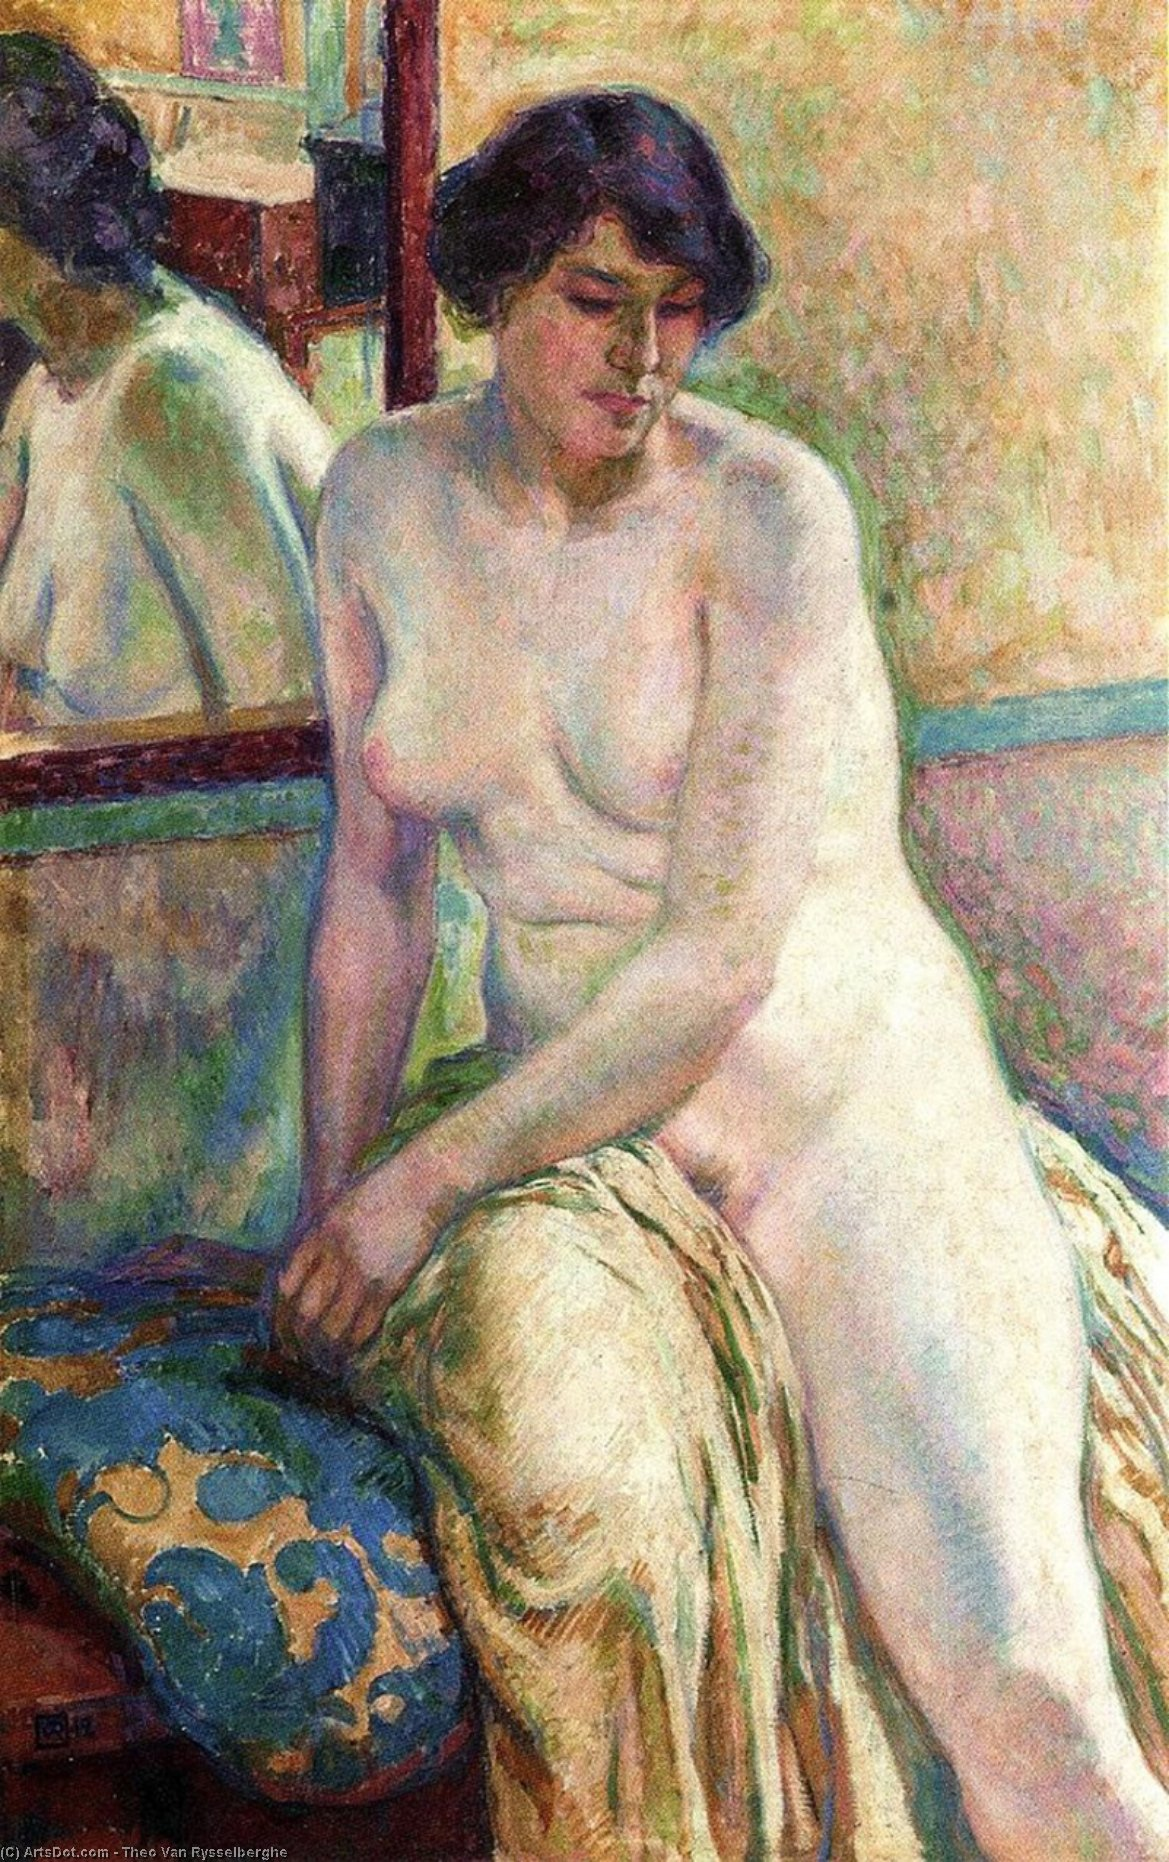 Venetian Woman (Marcella), Oil On Canvas by Theo Van Rysselberghe (1862-1926, Belgium)